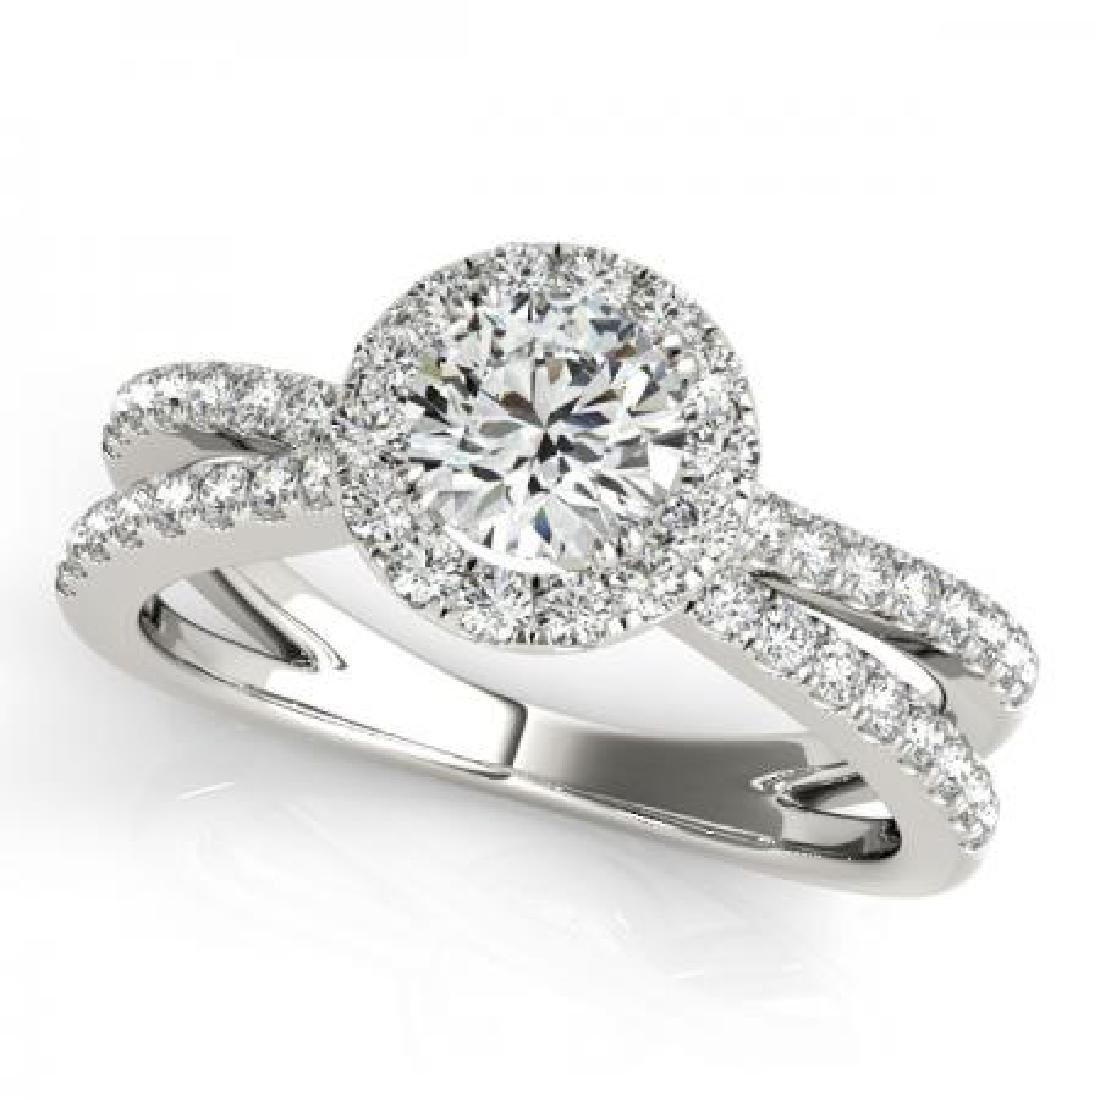 CERTIFIED PLATINUM 1.15 CT G-H/VS-SI1 DIAMOND HALO ENGA